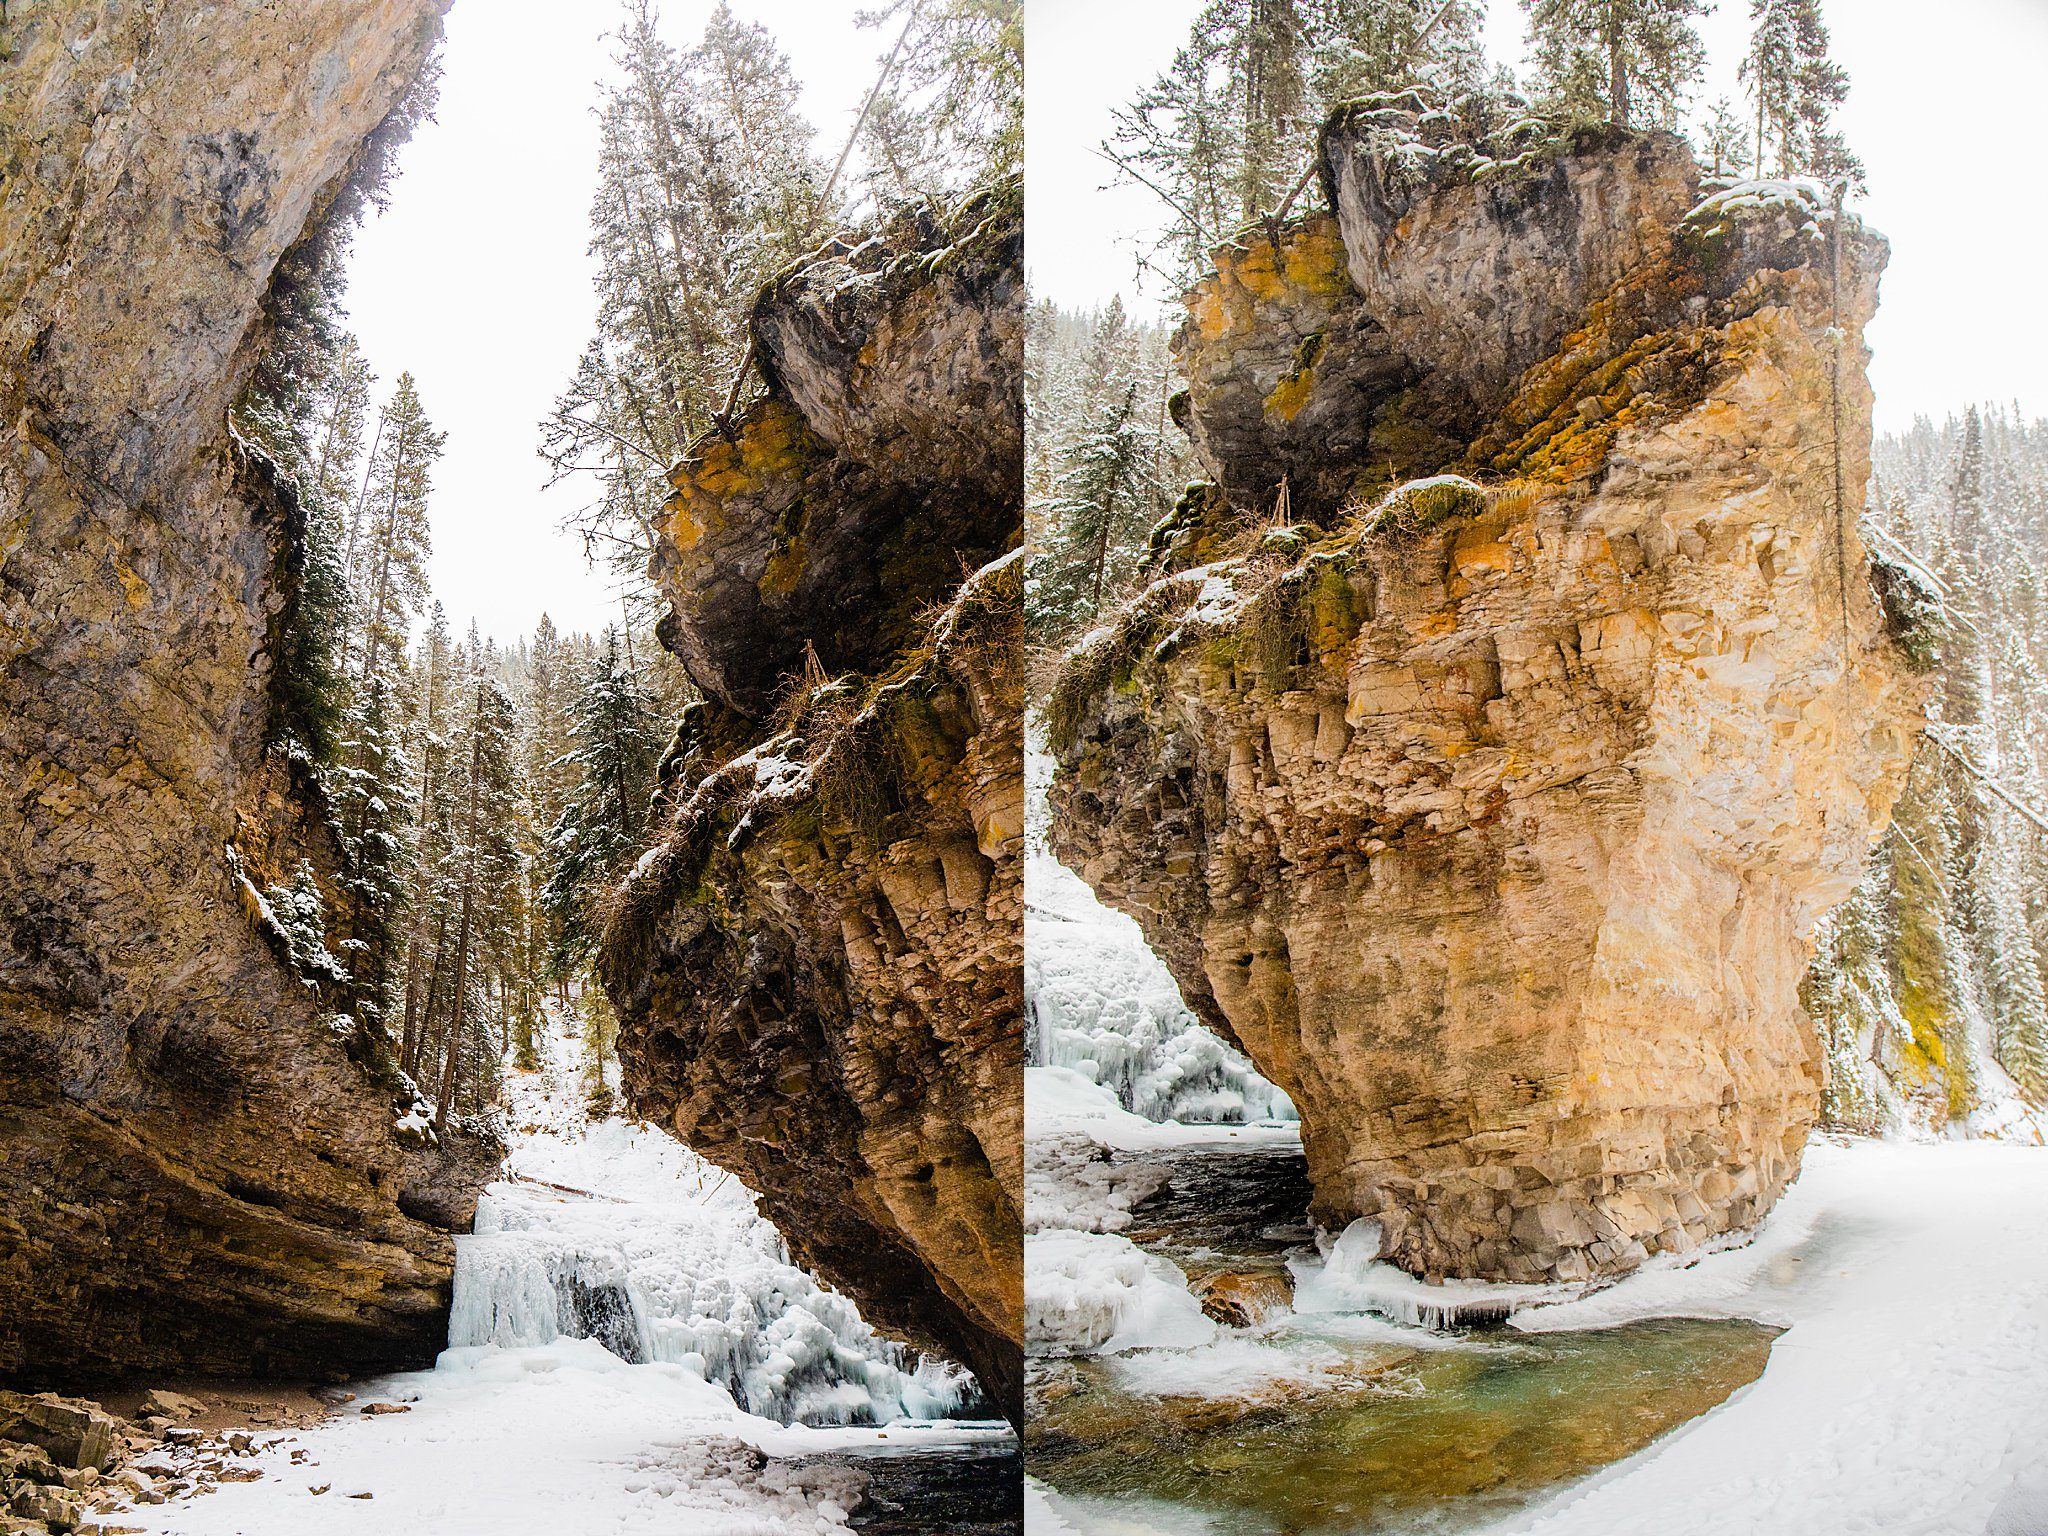 winter, alberta, visit alberta, johnston canyon, johnson canyon winter, ice walk, lower falls, upper falls, banff, banff national park, visit banff in the winter, secret cave